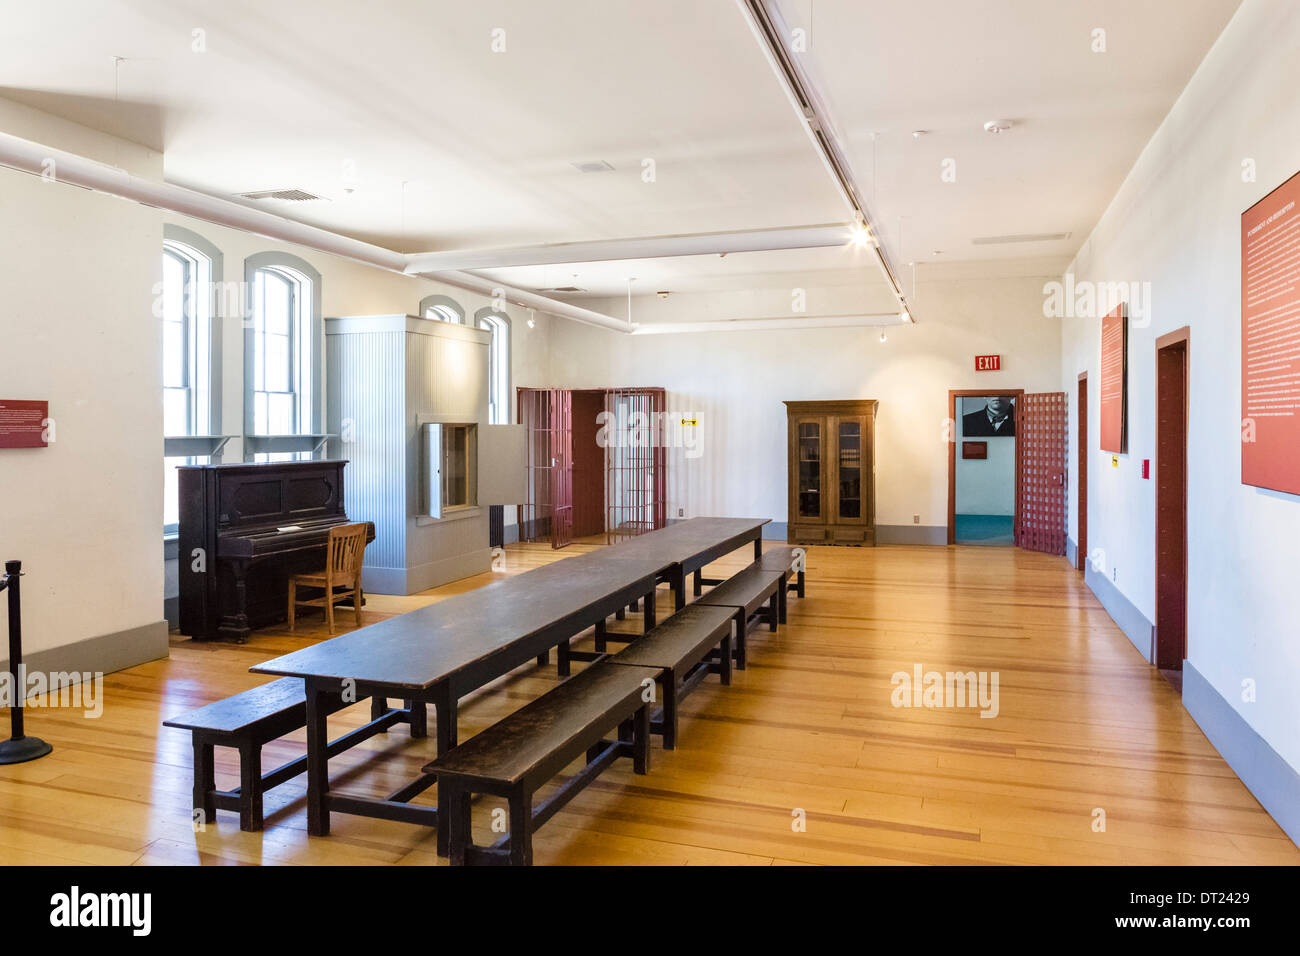 Interior of Wyoming Territorial Prison Museum, where the outlaw Butch Cassidy was once imprisoned, Laramie, Wyoming, USA - Stock Image